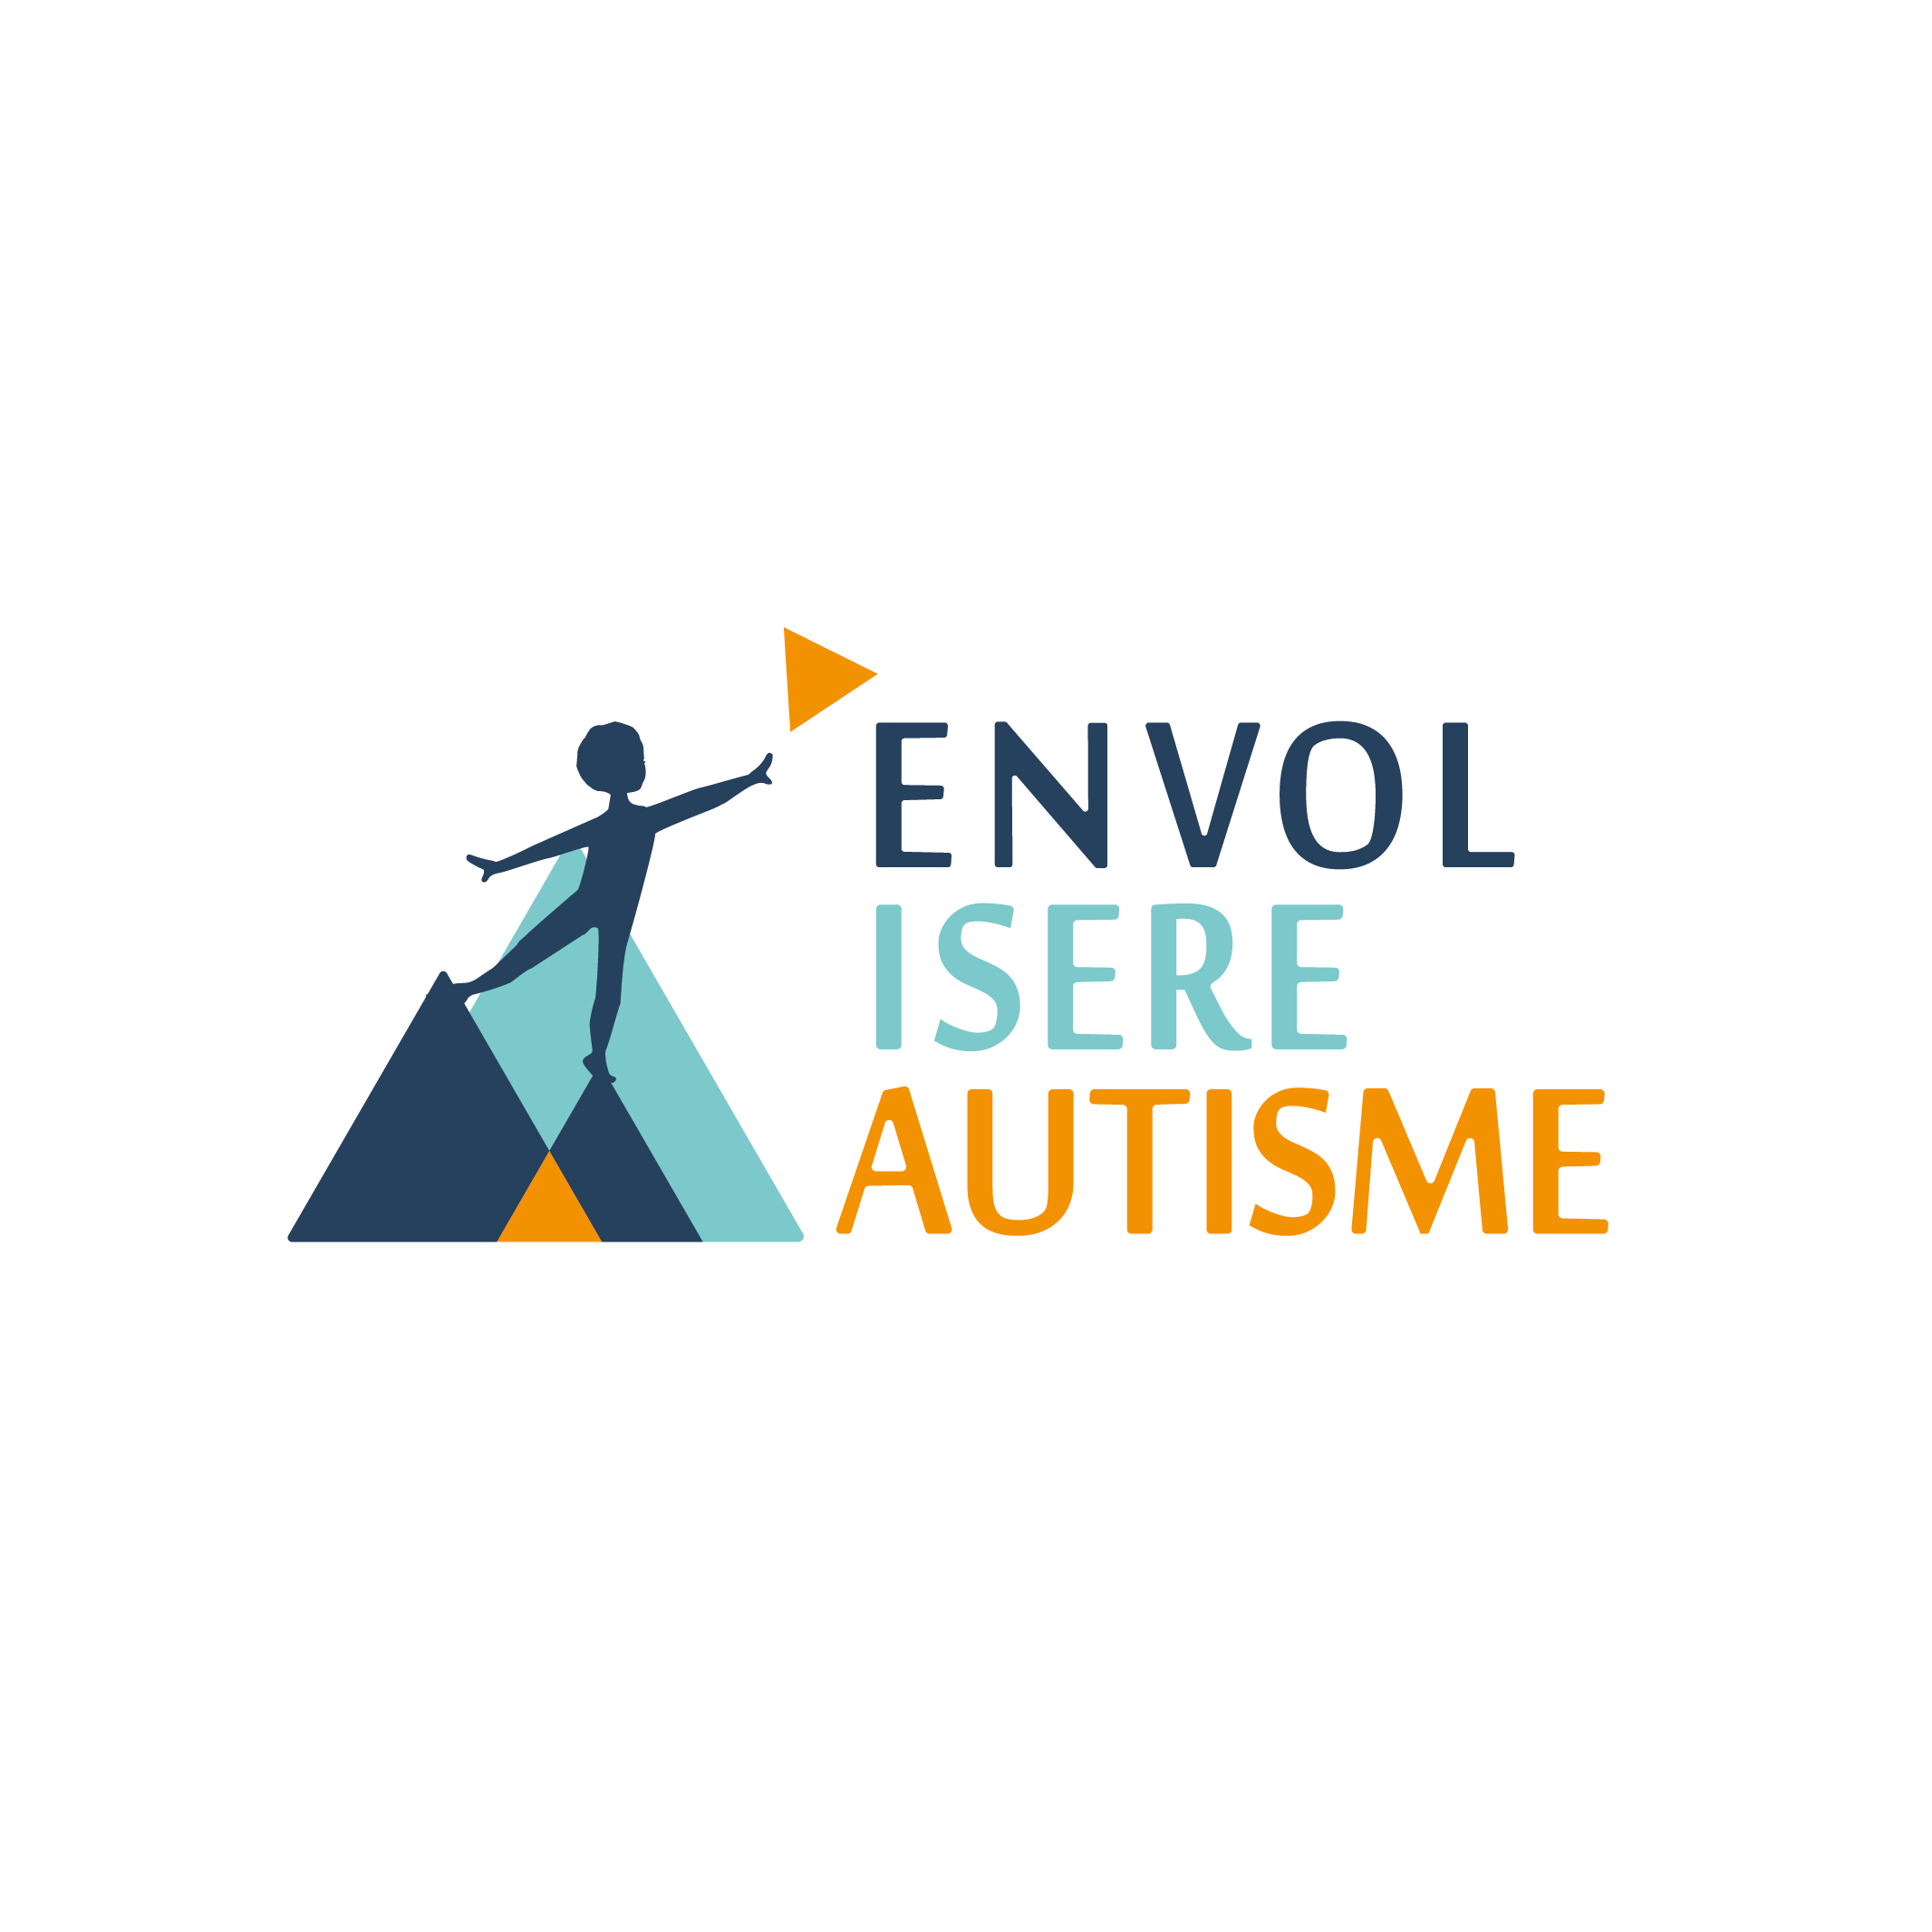 Association - ENVOL ISERE AUTISME